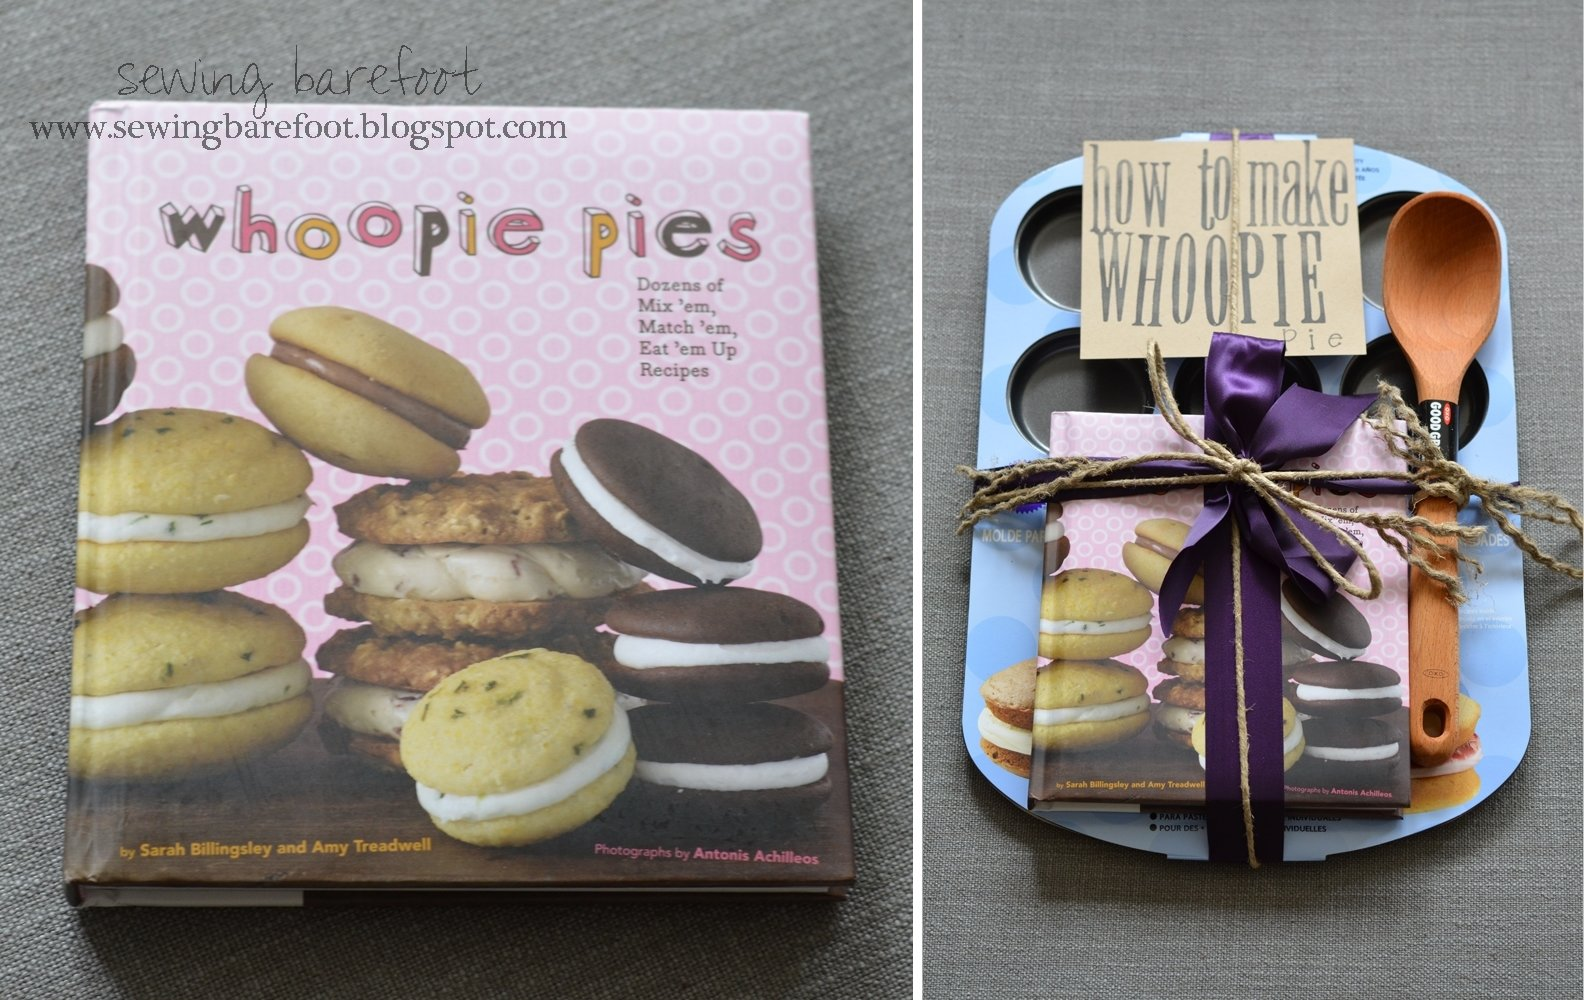 10 Nice Cute Wedding Shower Gift Ideas sewing barefoot how to make whoopie an adorable bridal shower gift 6 2020